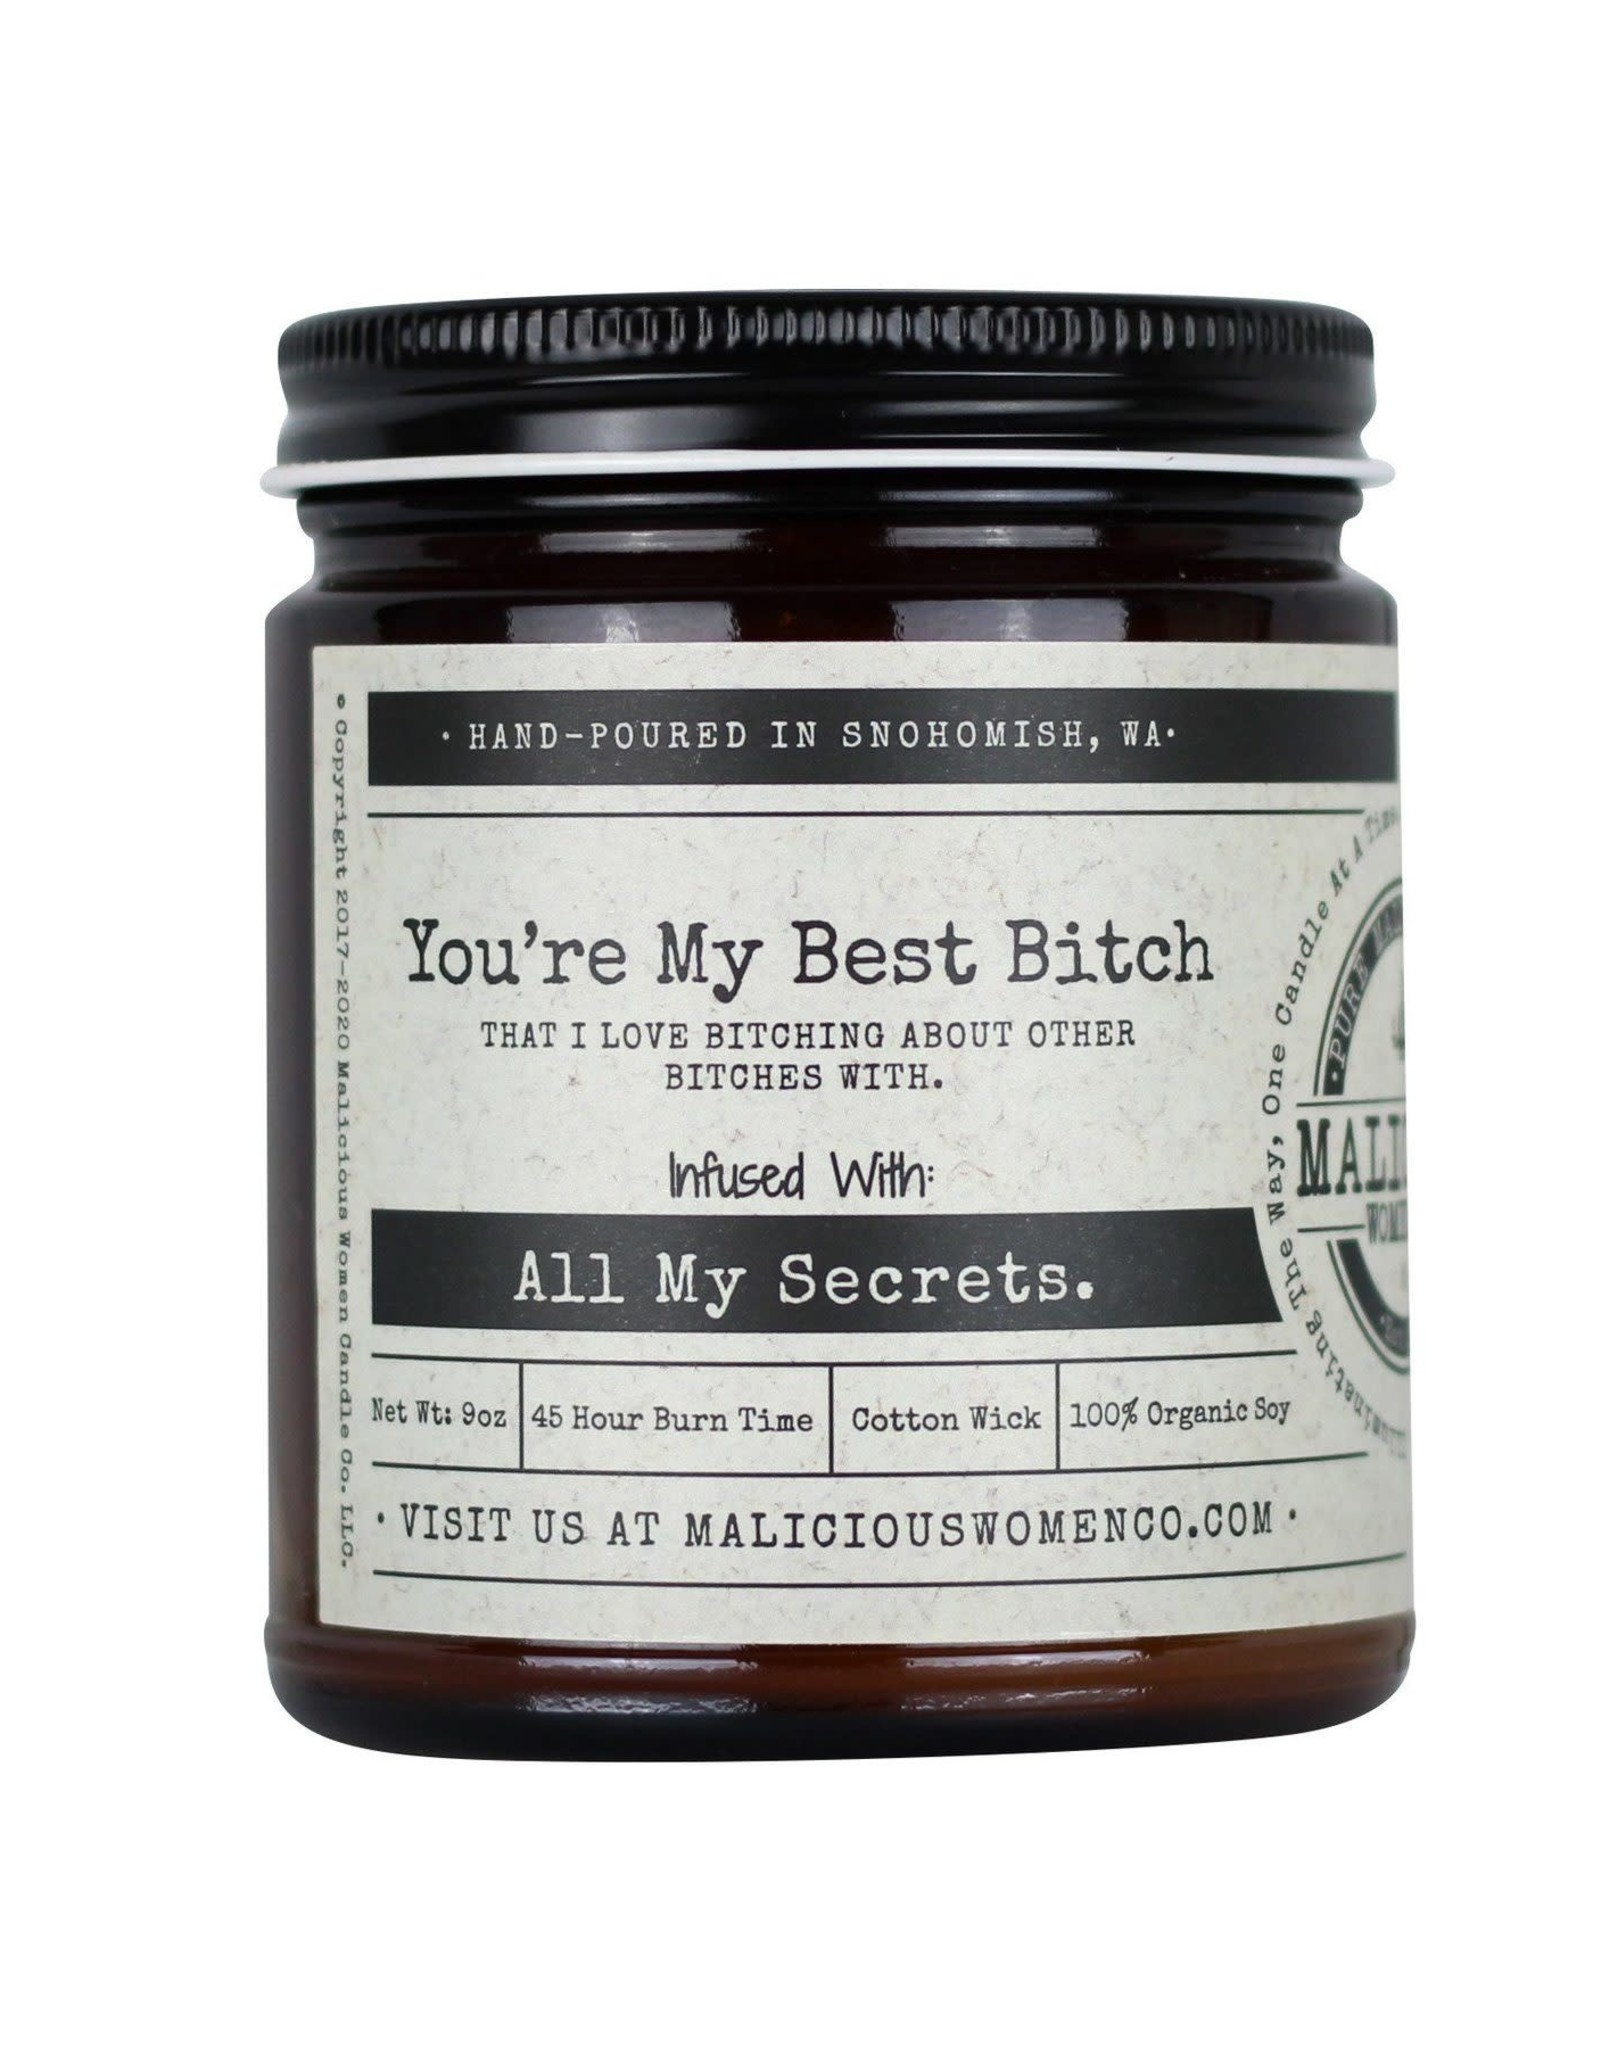 Malicious Women Candle Co. You're My Best Bitch Candle